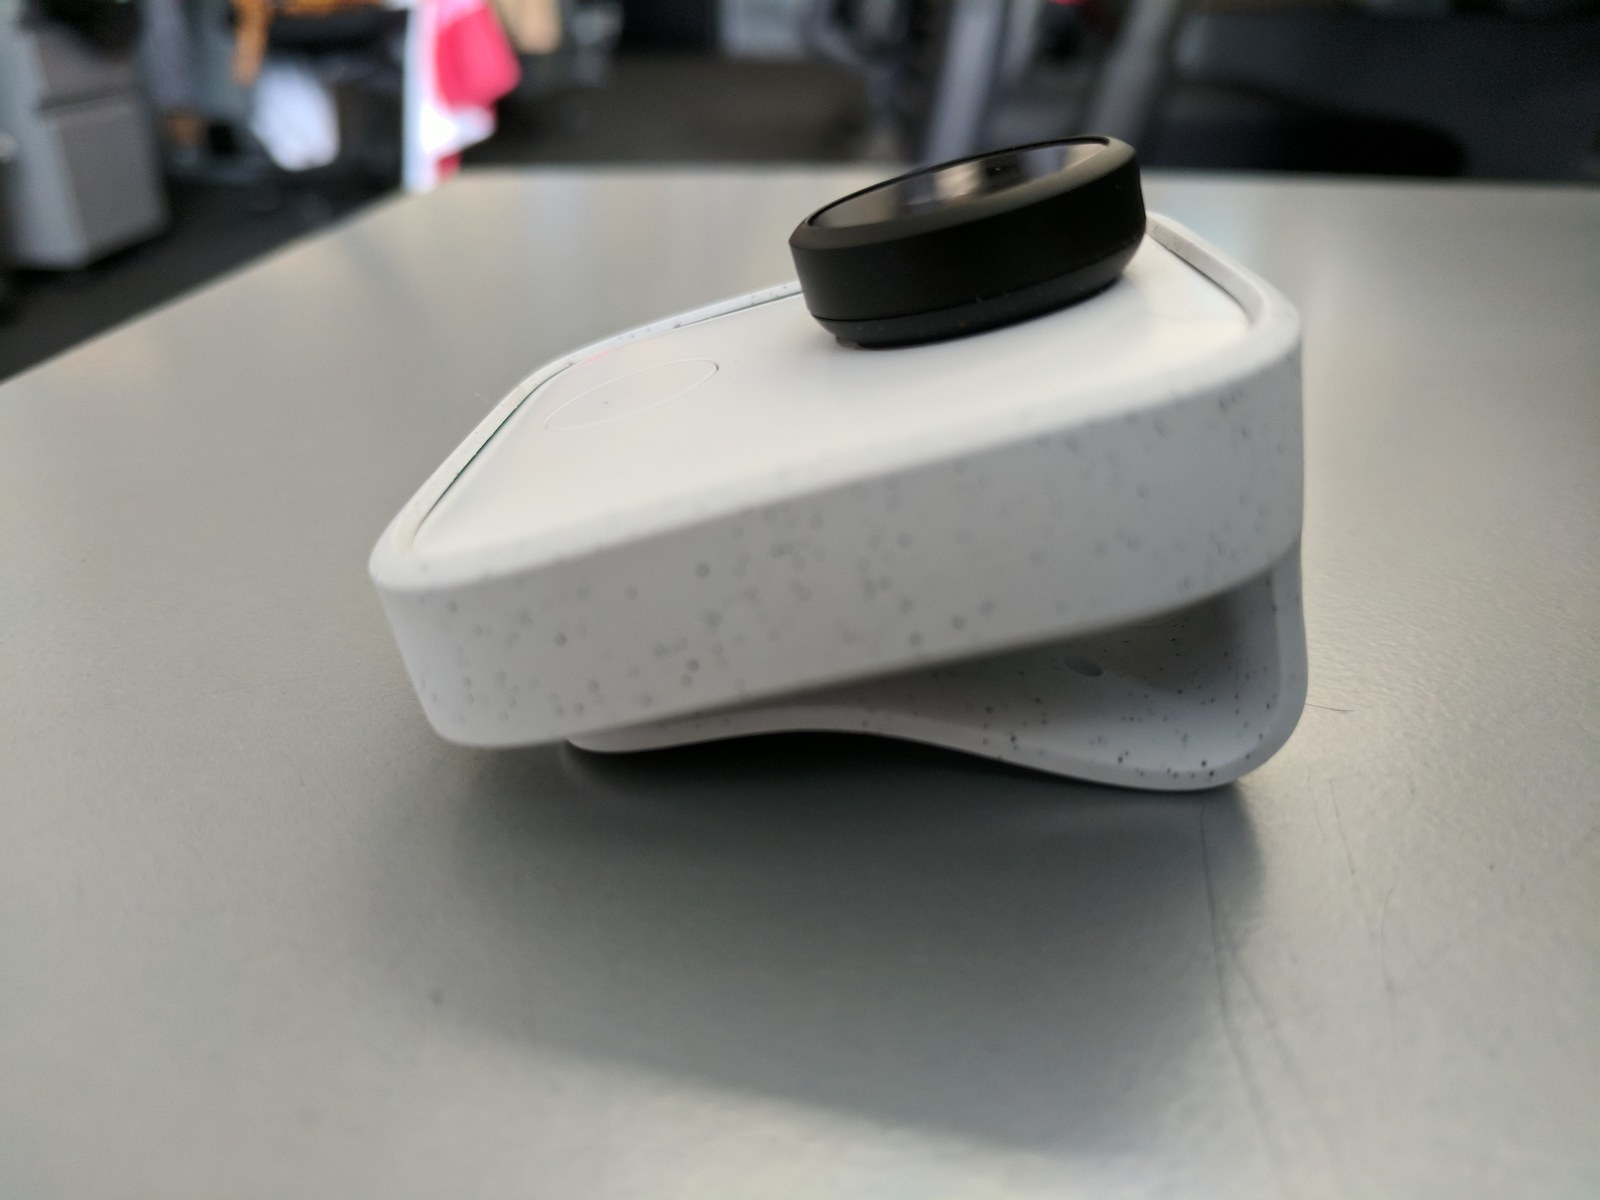 Google Clips is a tiny AI-powered camera